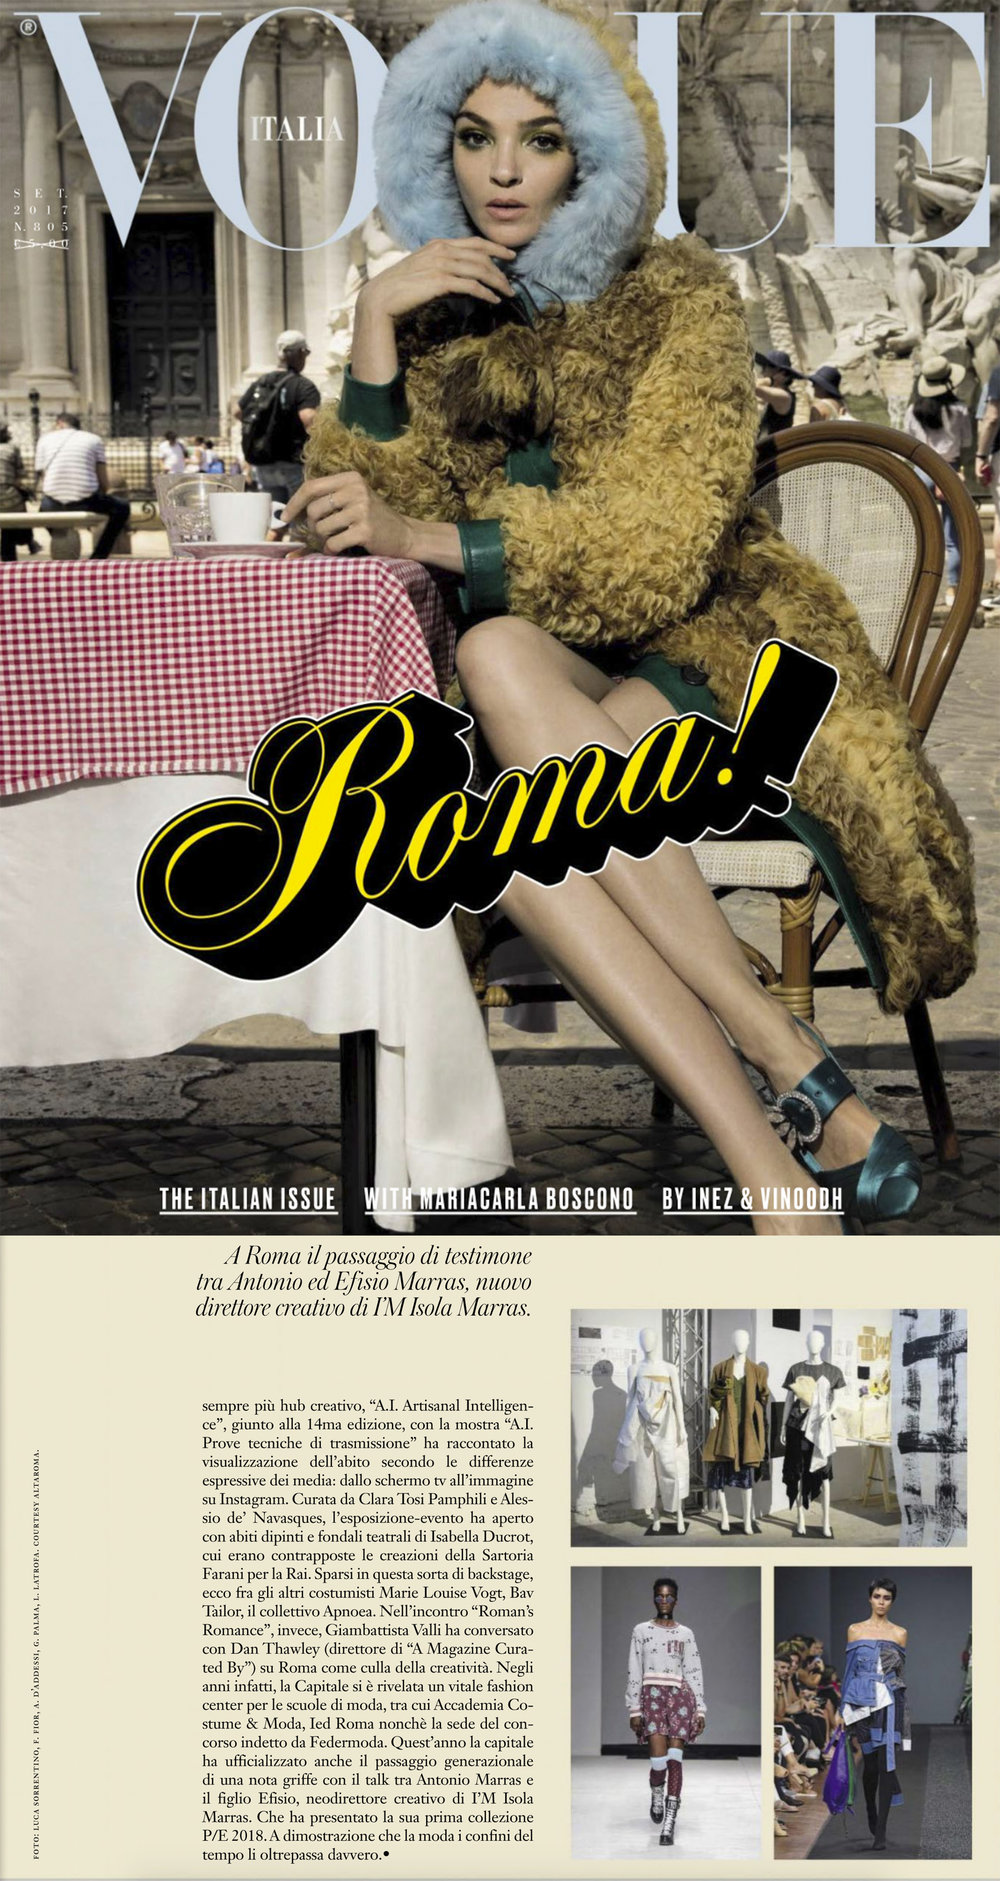 Vogue Italia September Issue   http://www.vogue.it